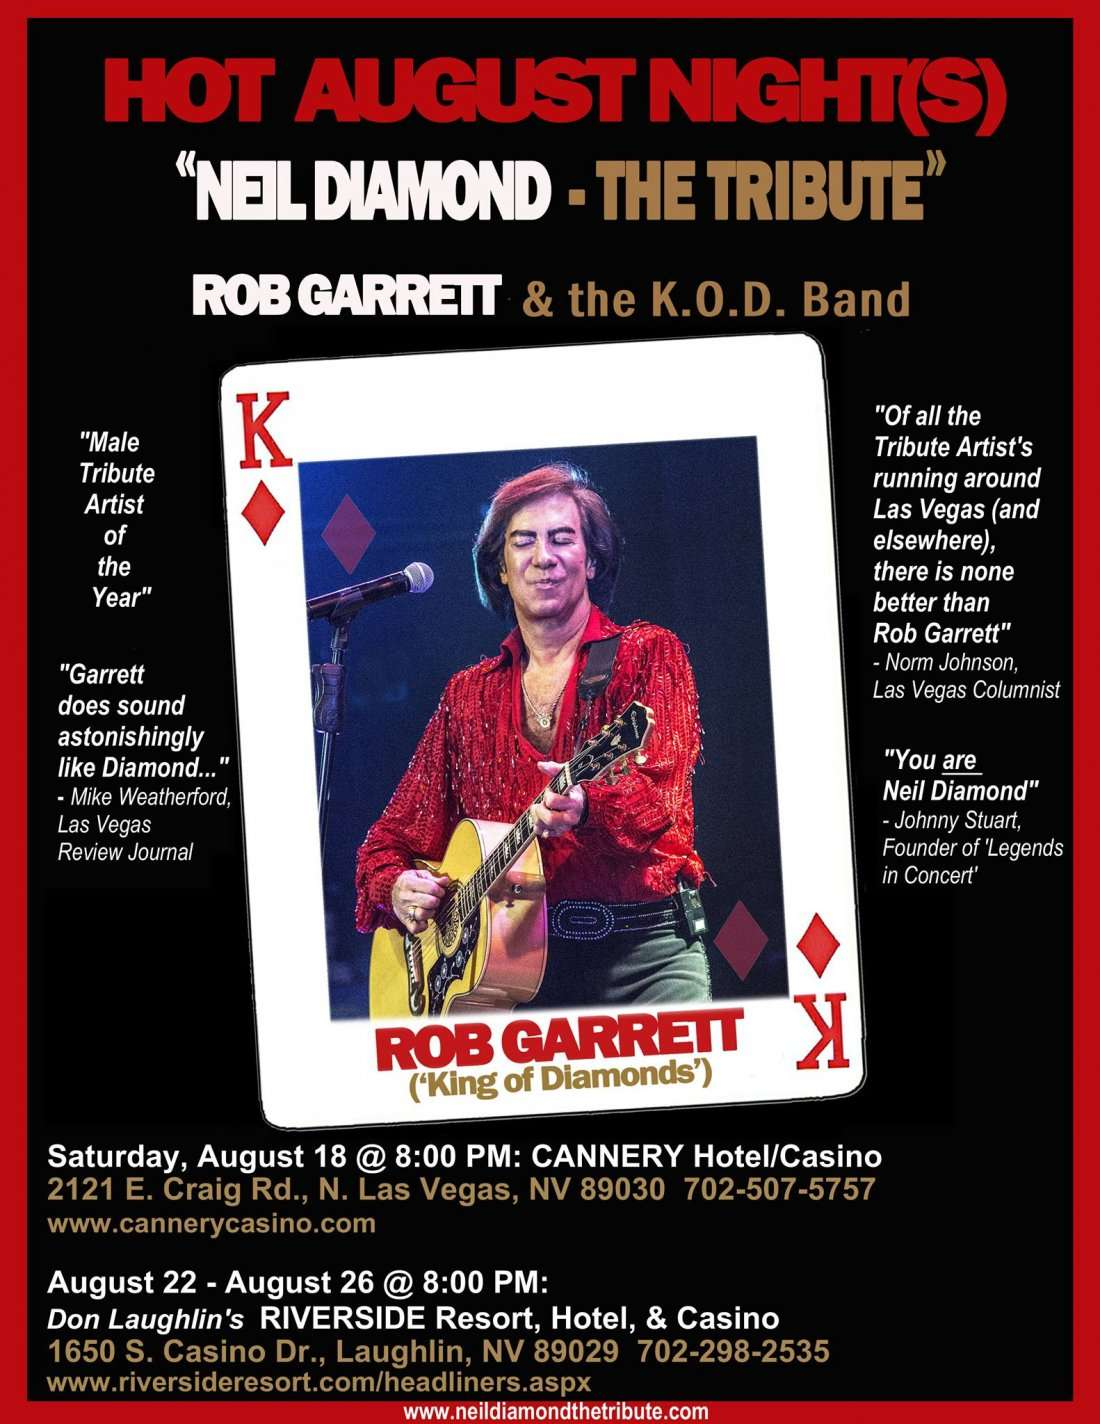 HOT AUGUST NIGHT (NEIL DIAMOND - THE TRIBUTE) starring ROB GARRETT & the K.O.D. Band